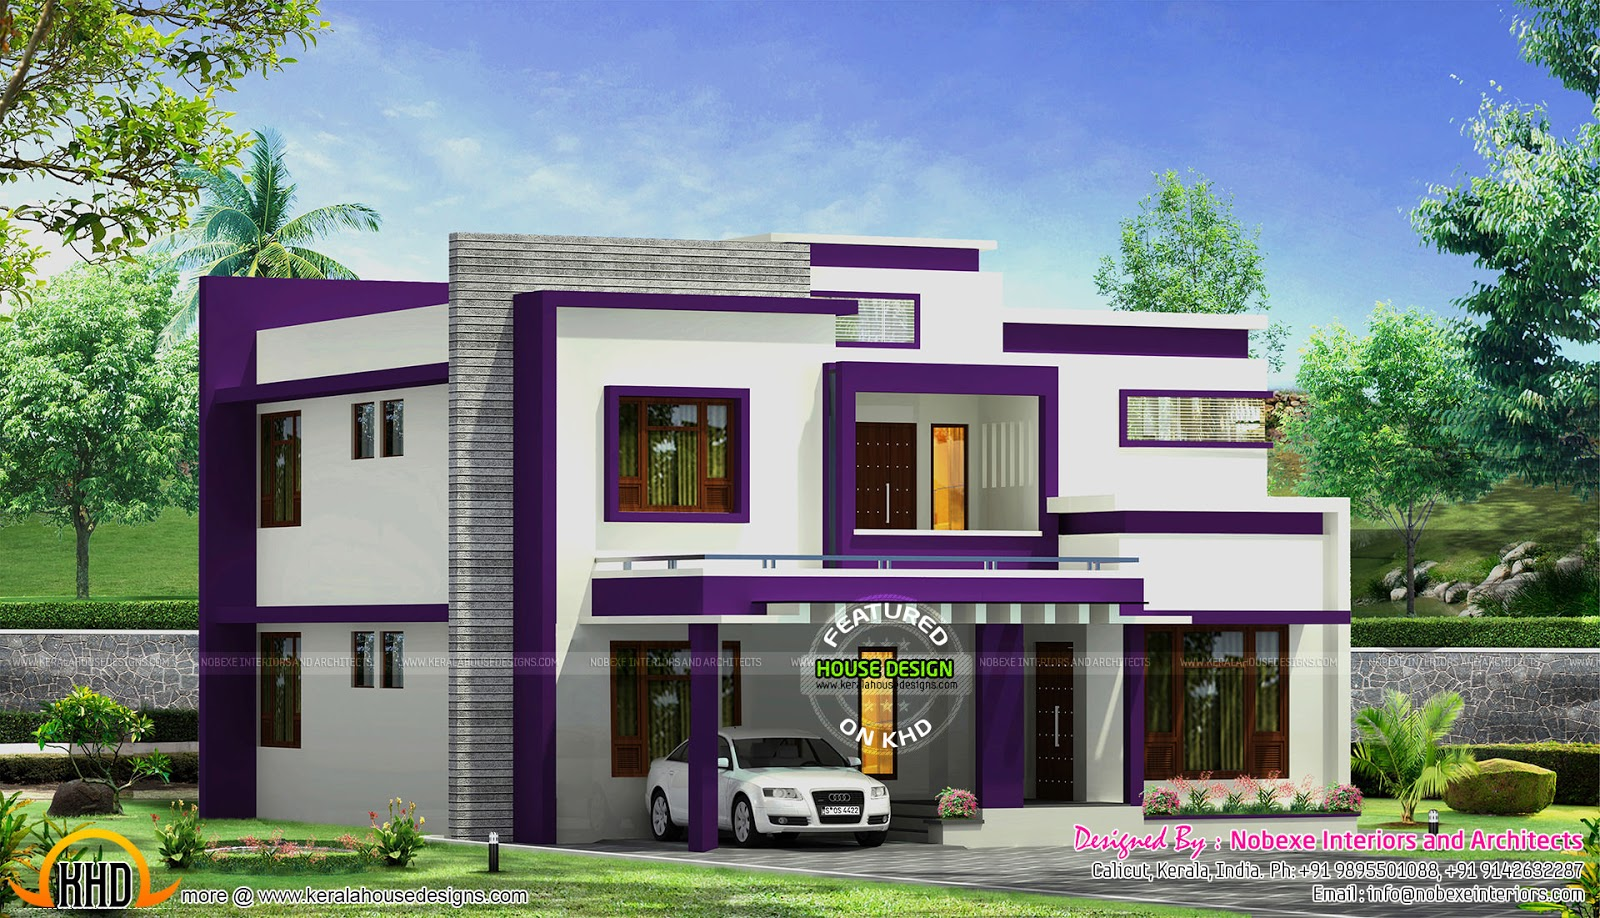 Contemporary home design by nobexe interiors kerala home for Blue print homes